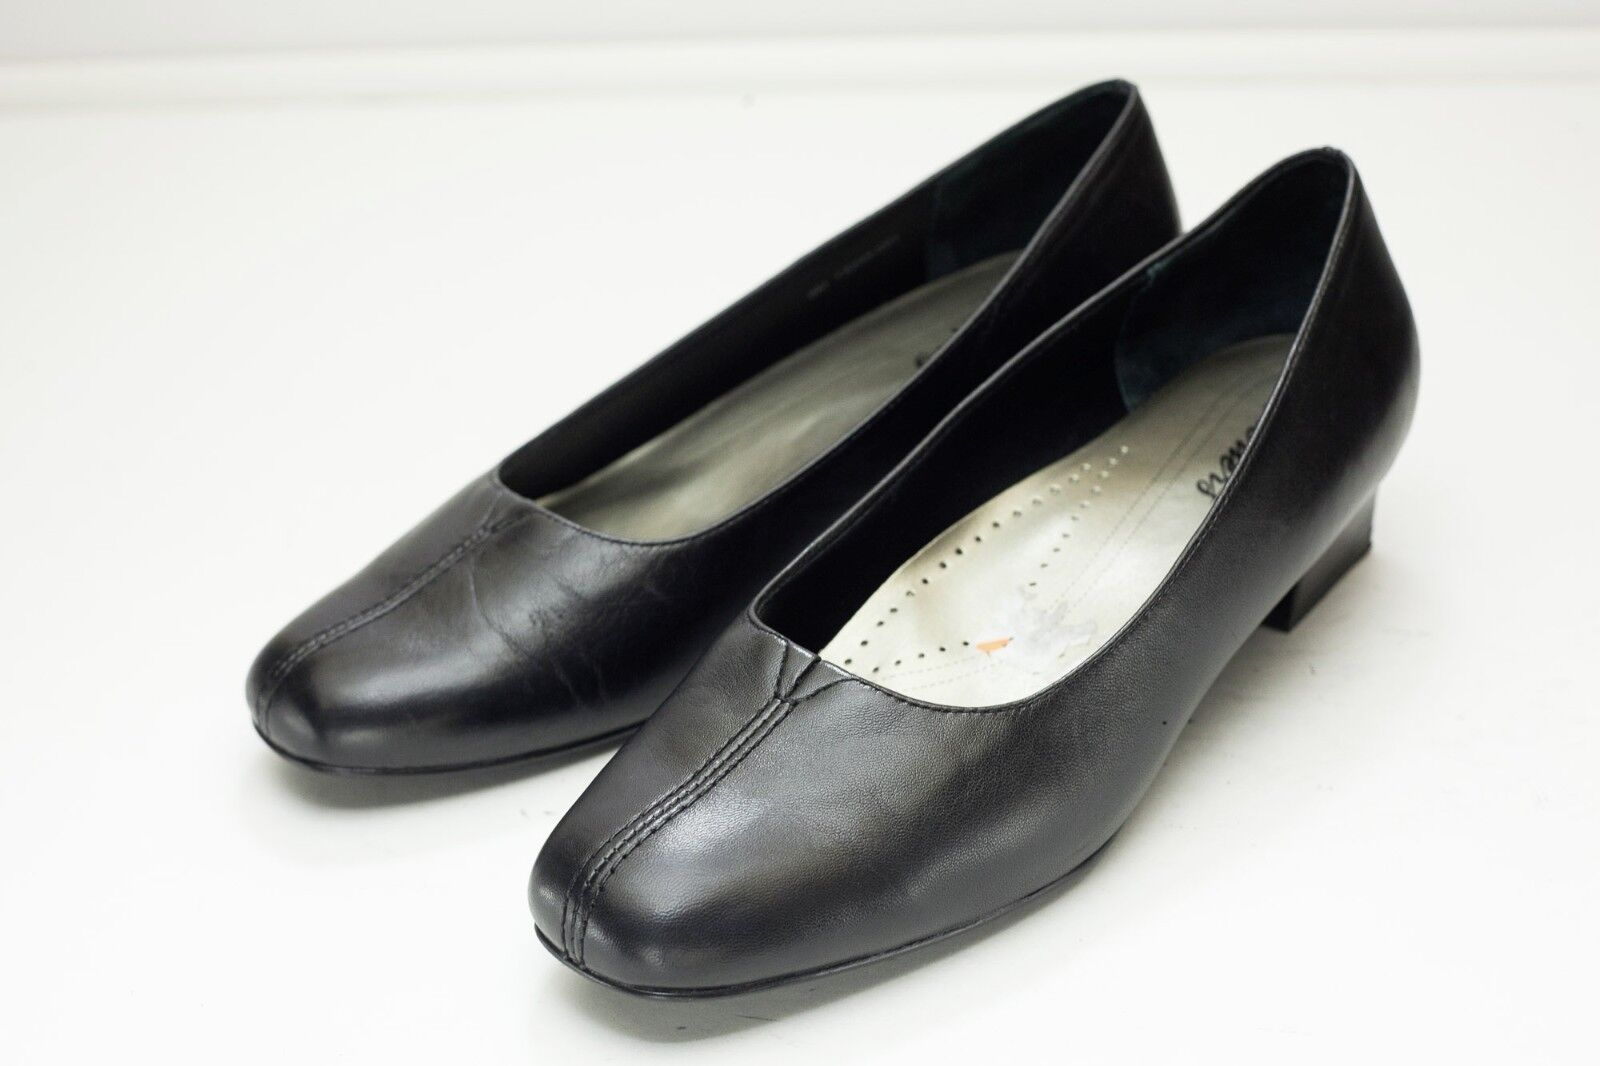 Tredters Doris Pump 9 Black Slip On shoes